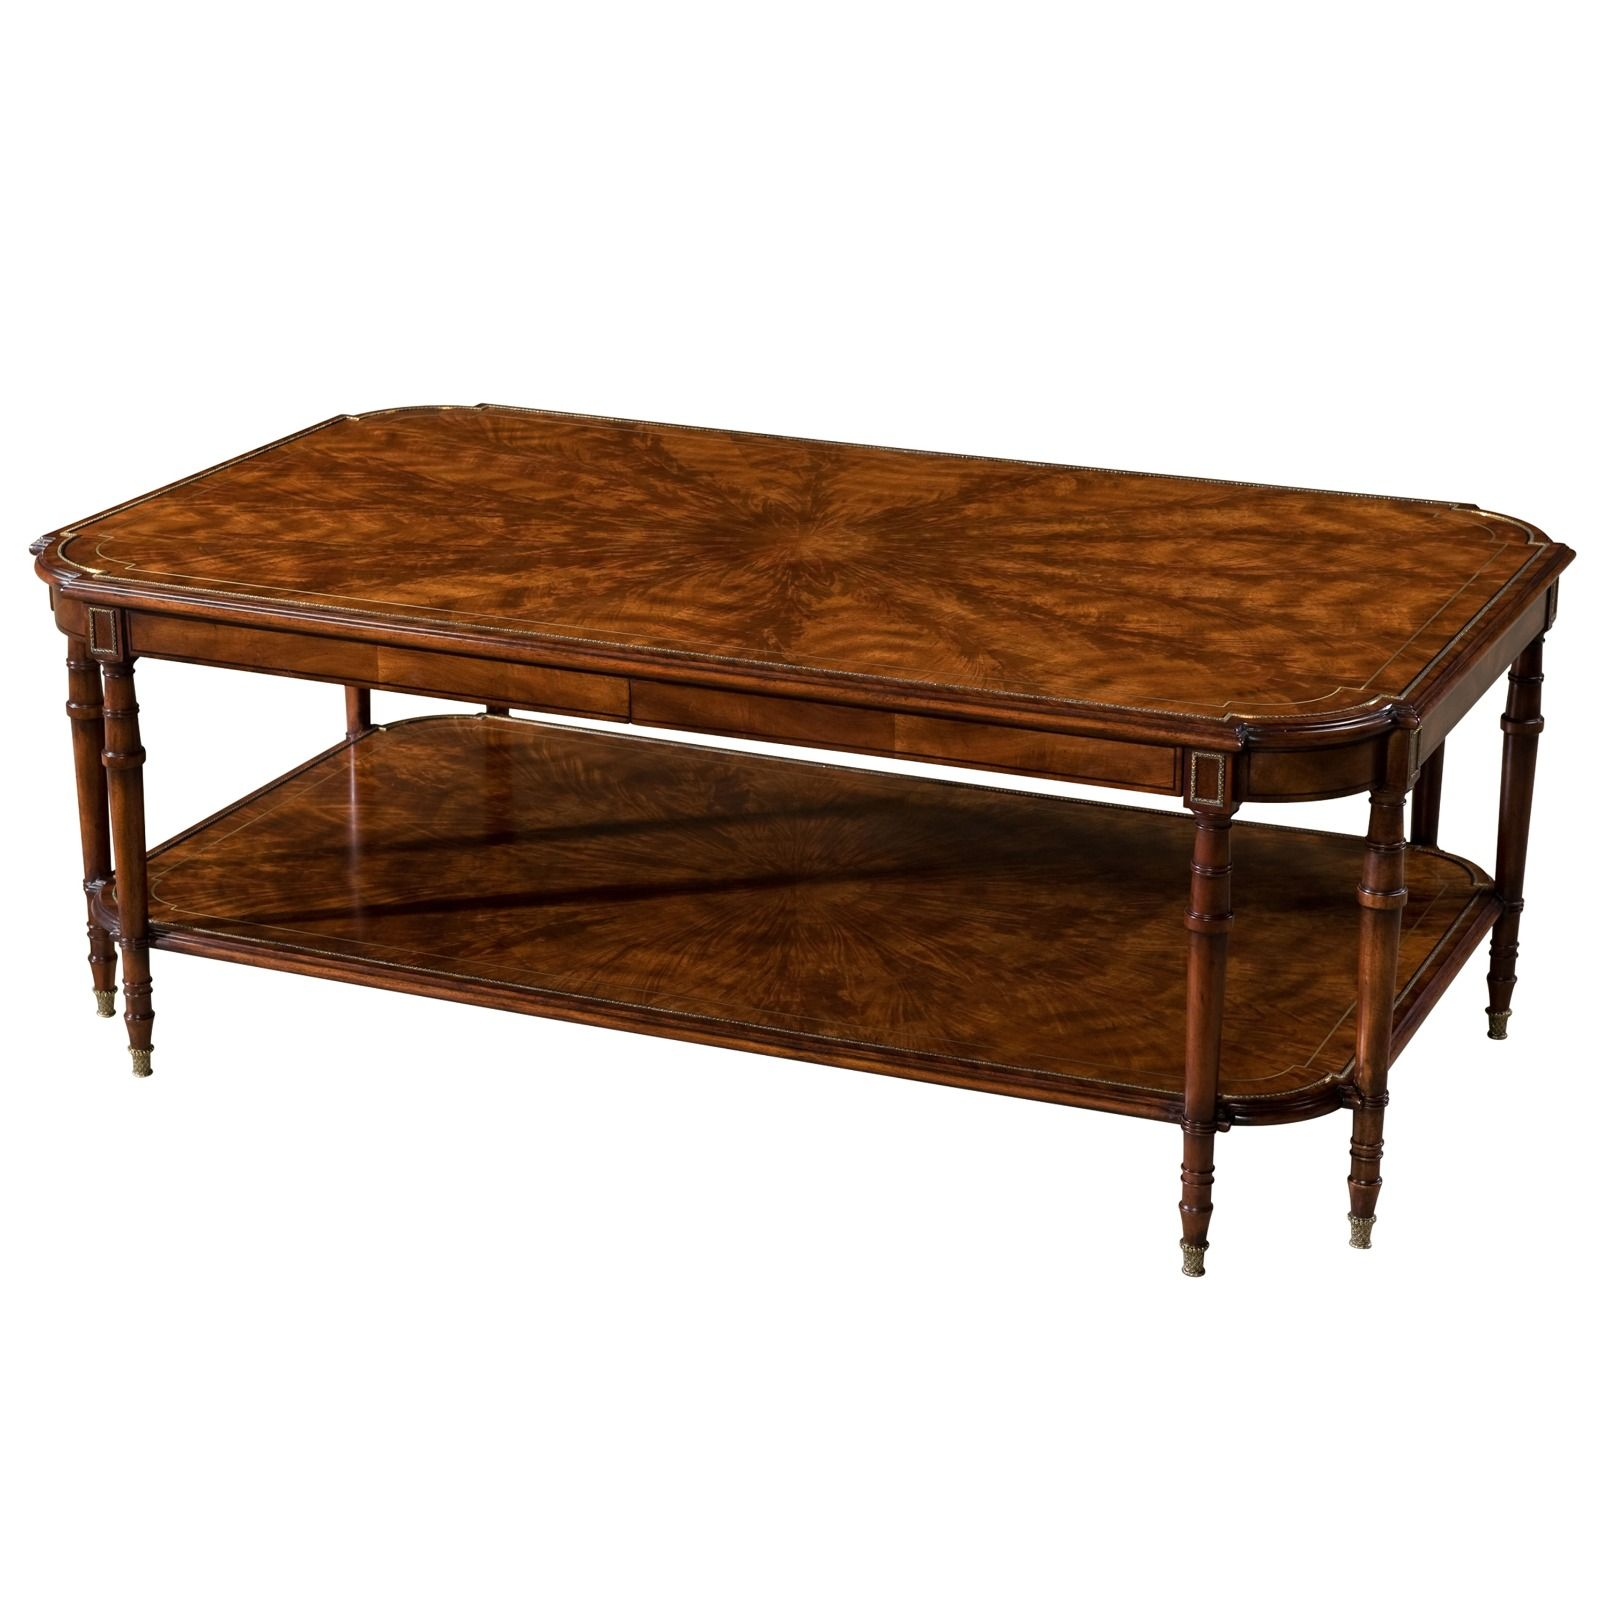 Flame mahogany coffee table